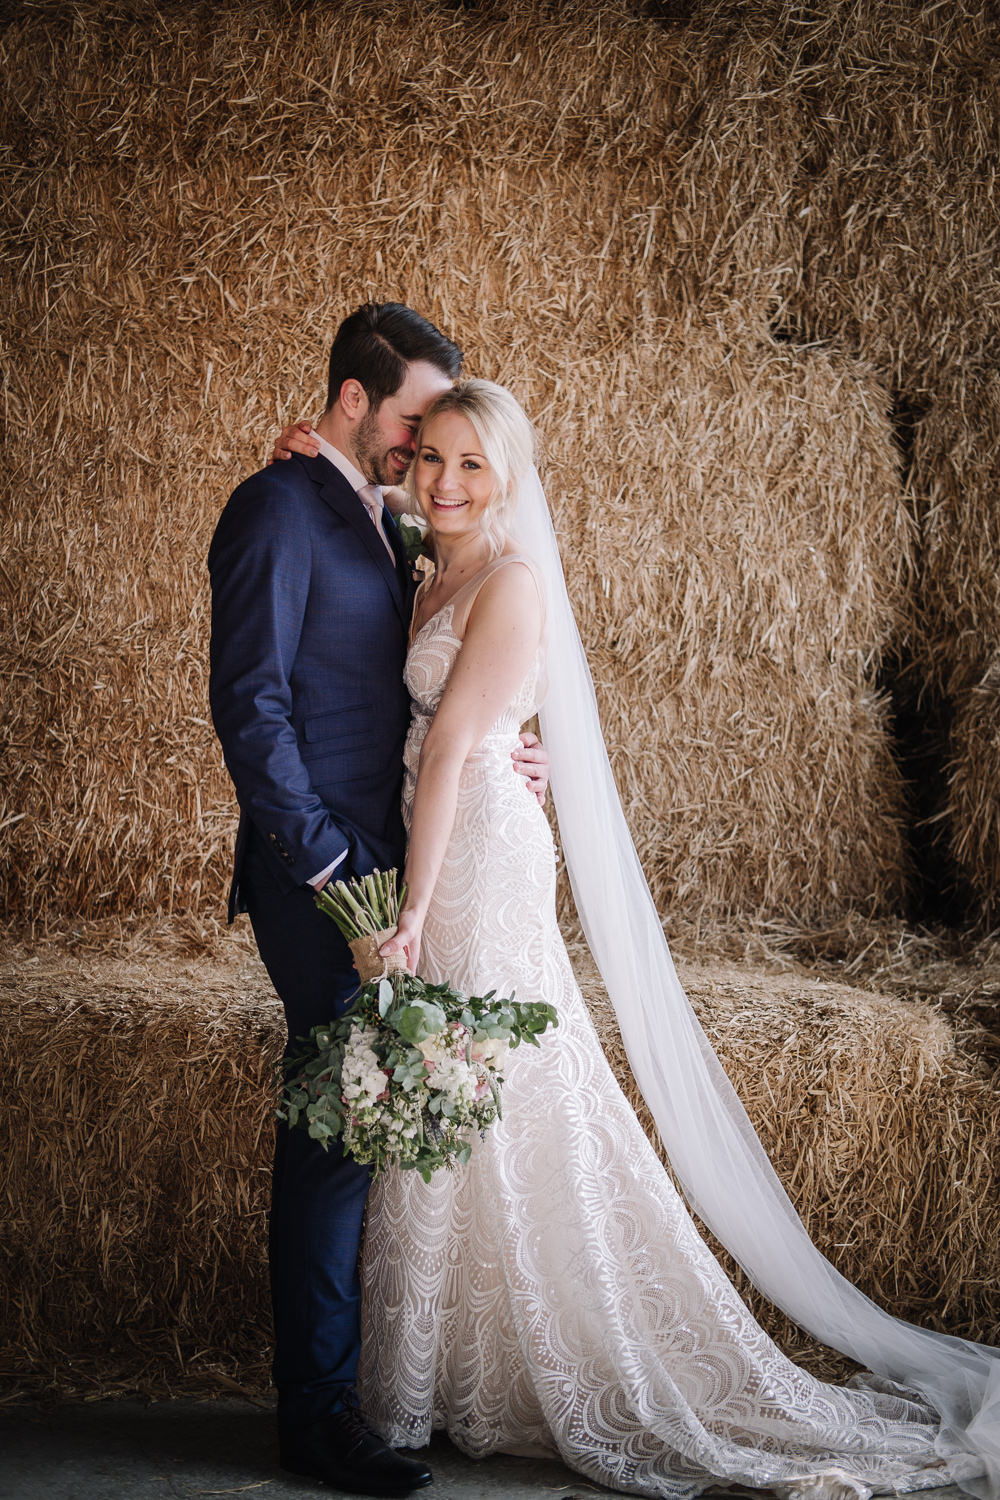 Dress Gown Bride Bridal Made With Love Bridal Train Veil Fit Flare Owen House Wedding Barn Nessworthy Photography